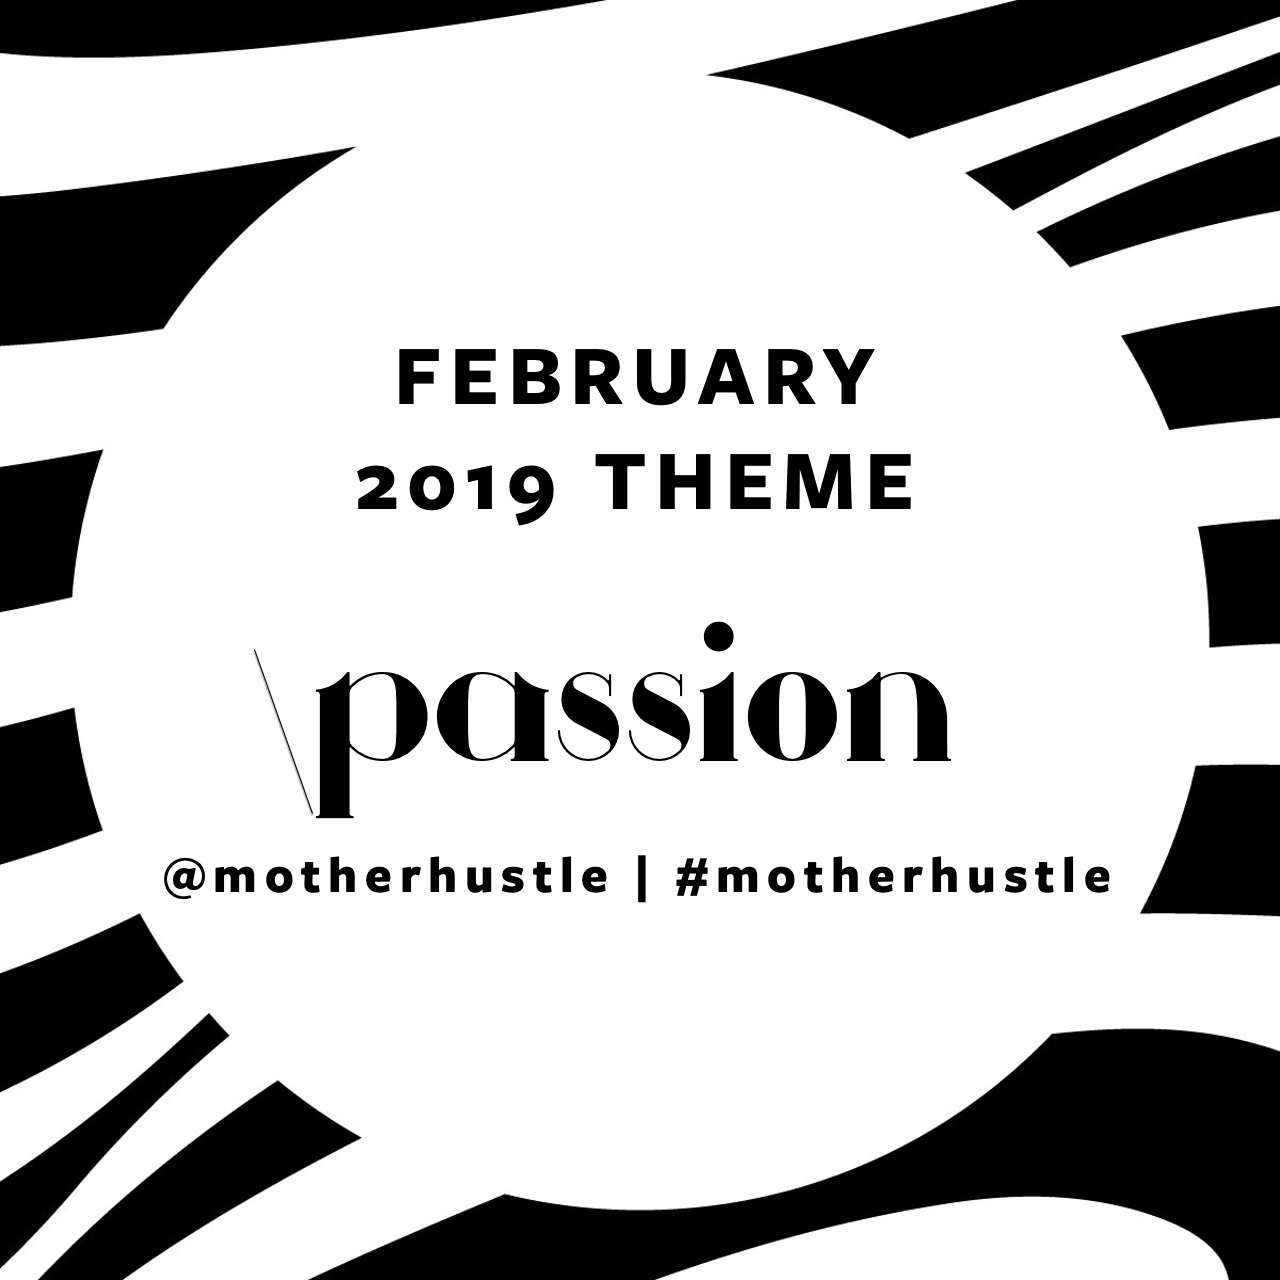 MotherHustle Theme February 2019 - Passion